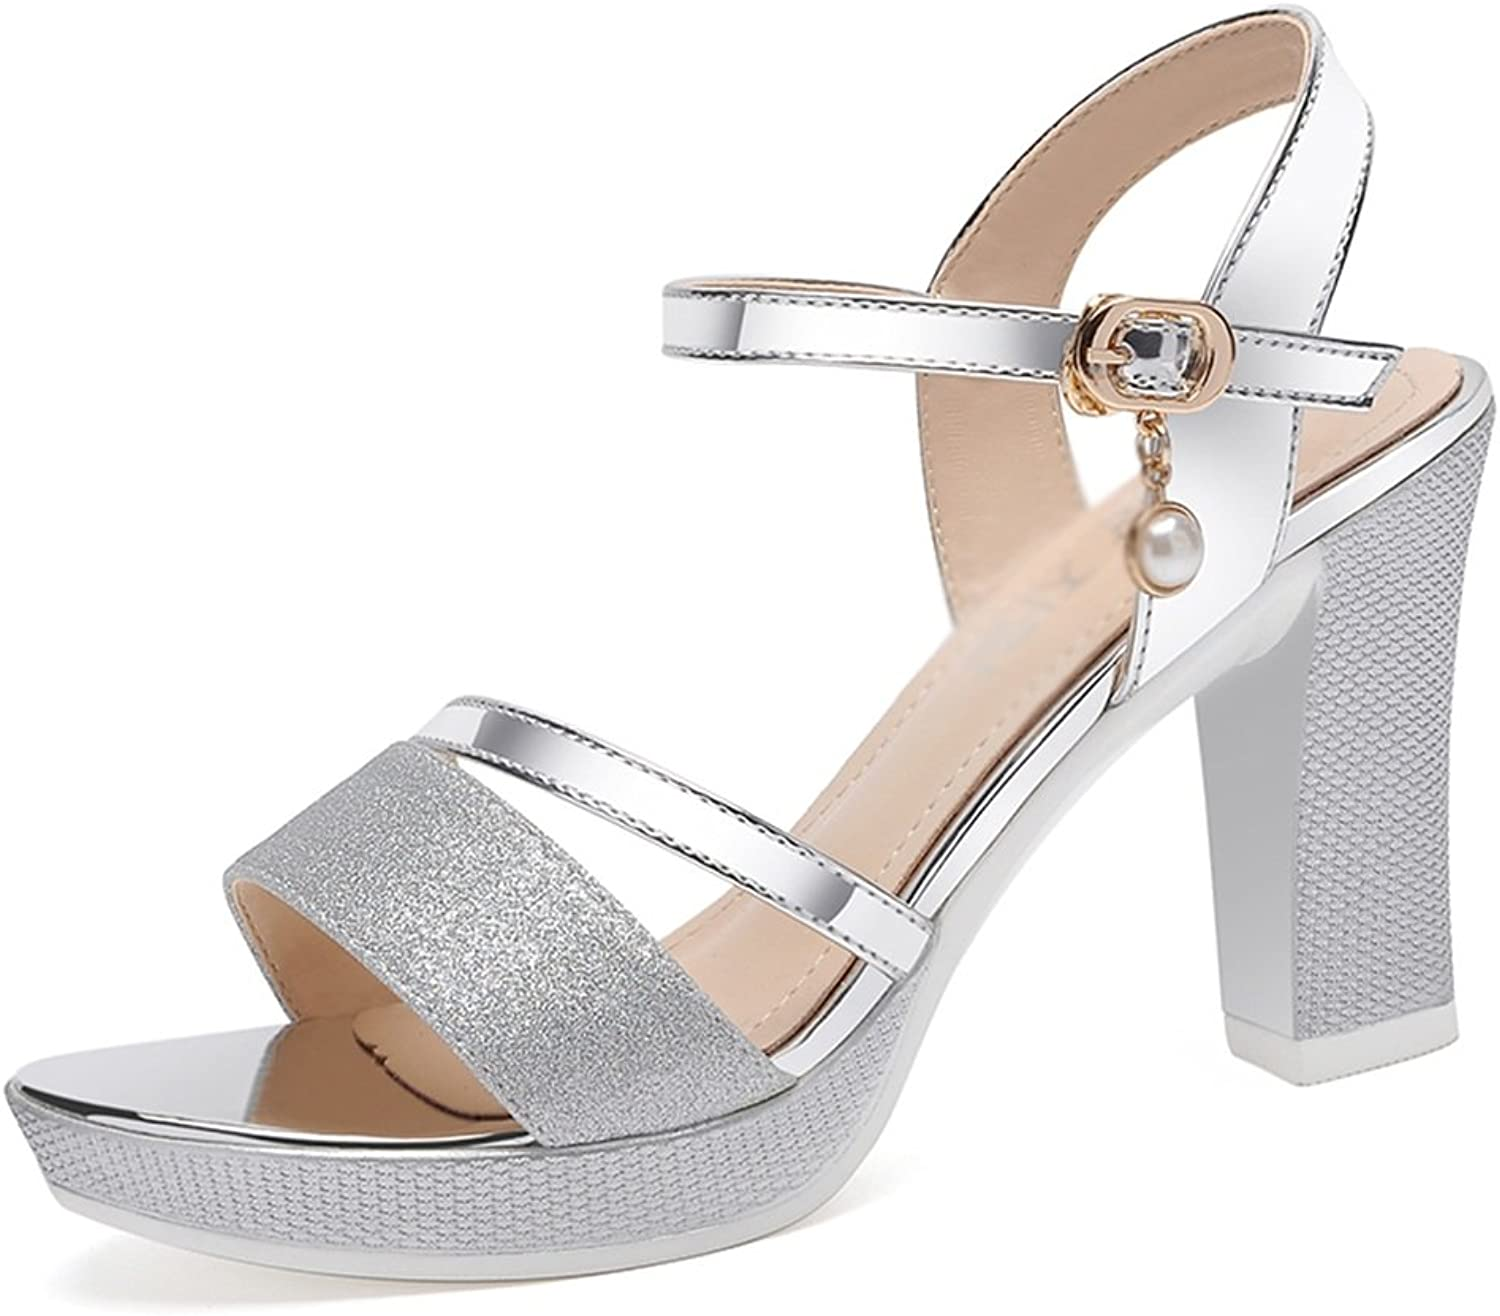 Sandals Lady shoes Mid Heel Silver gold Sandals Rough with Summer (color   Silver, Size   EU35 UK3 CN34)